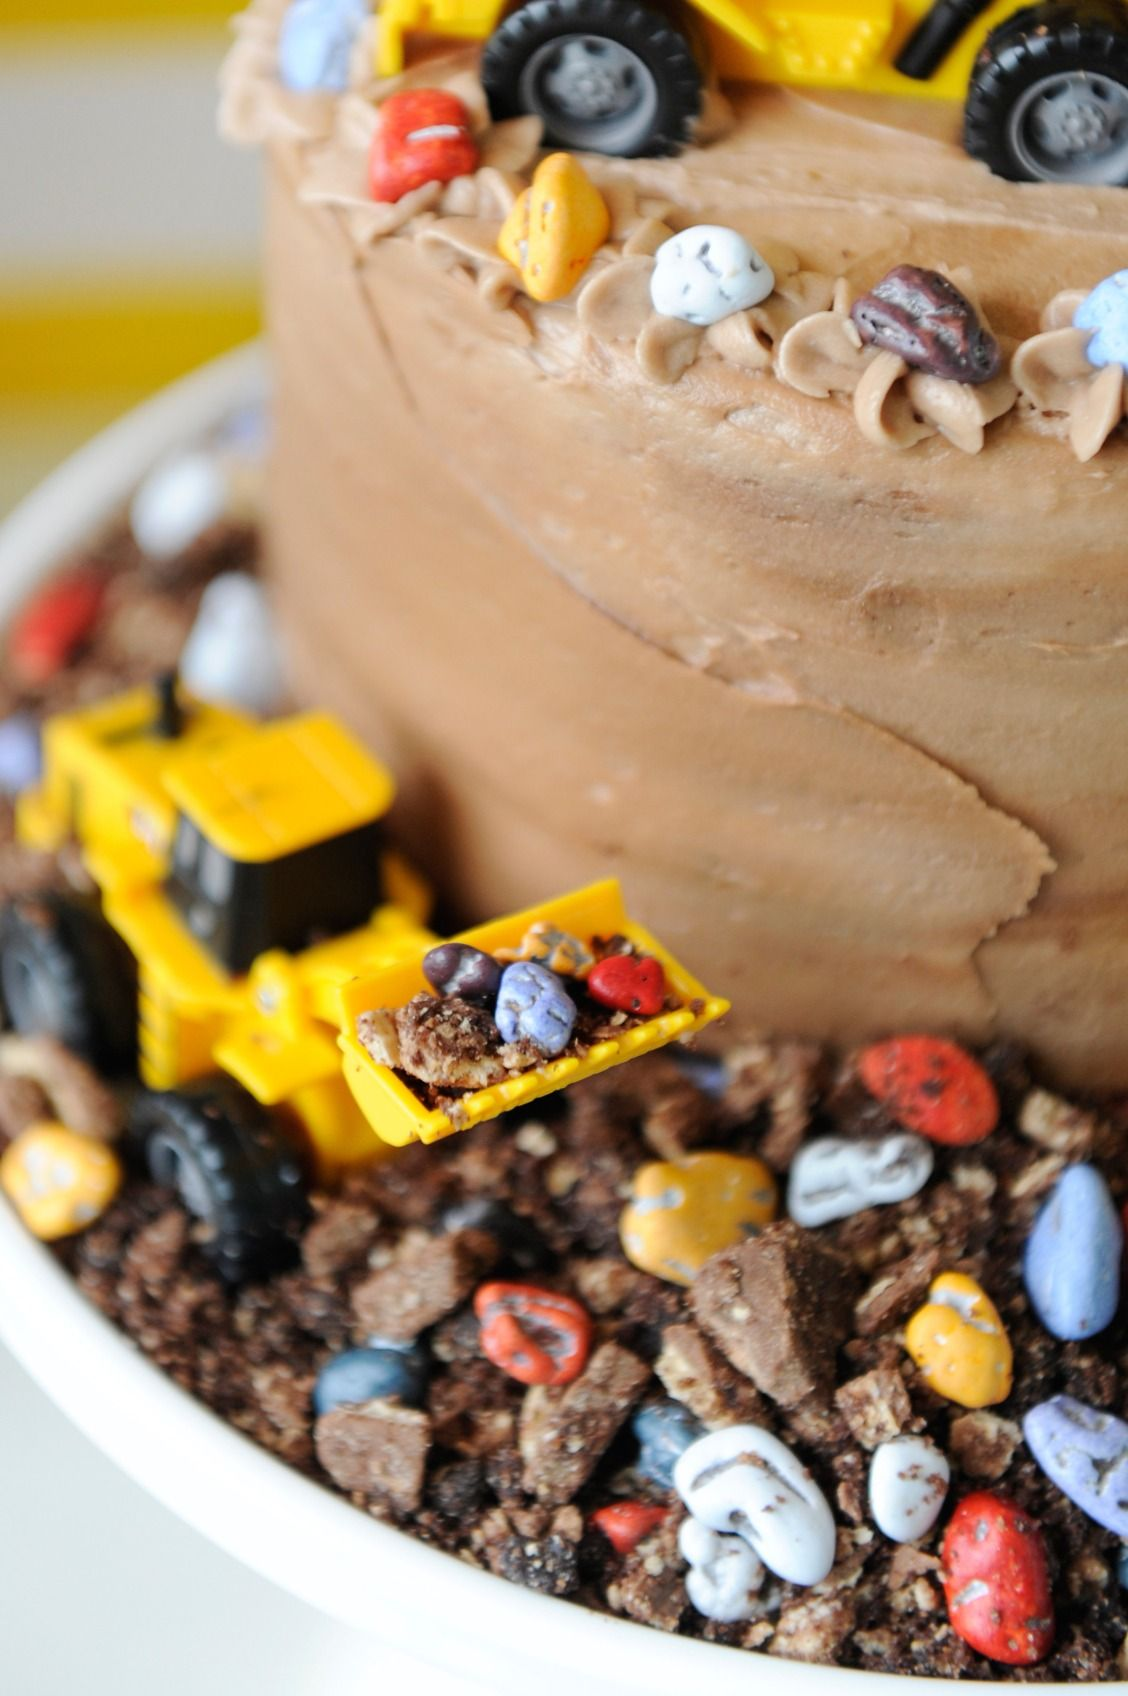 Toy truck birthday cake surrounded by rock candy and